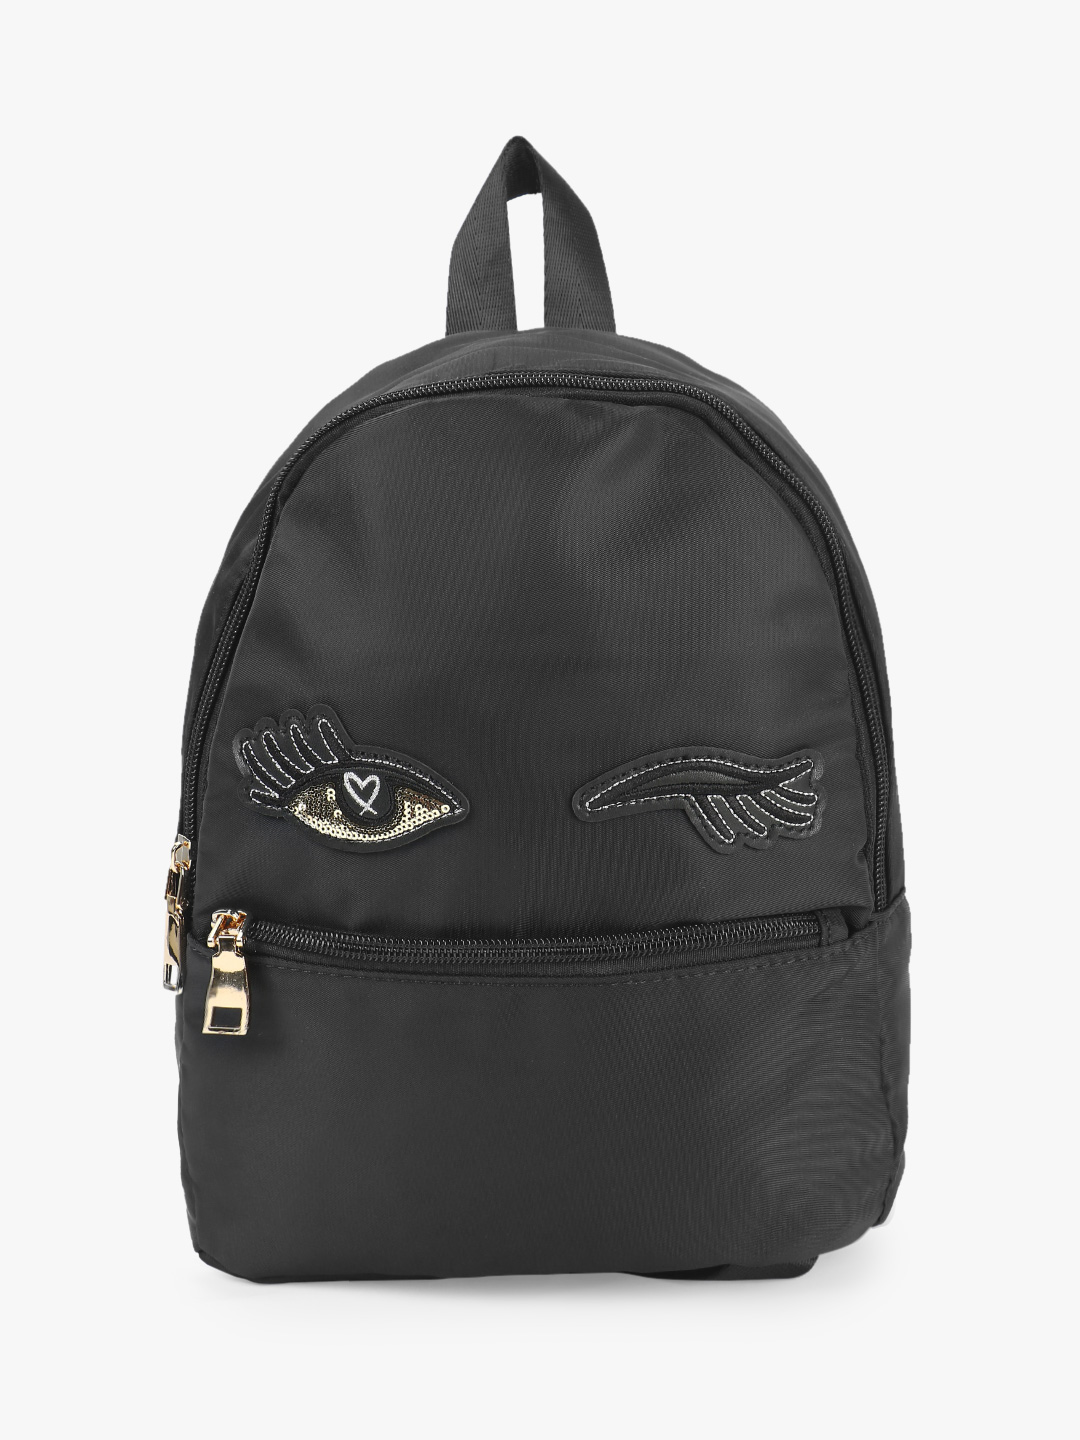 Origami Lily Black Sequin Wink Eye Patch Backpack 1